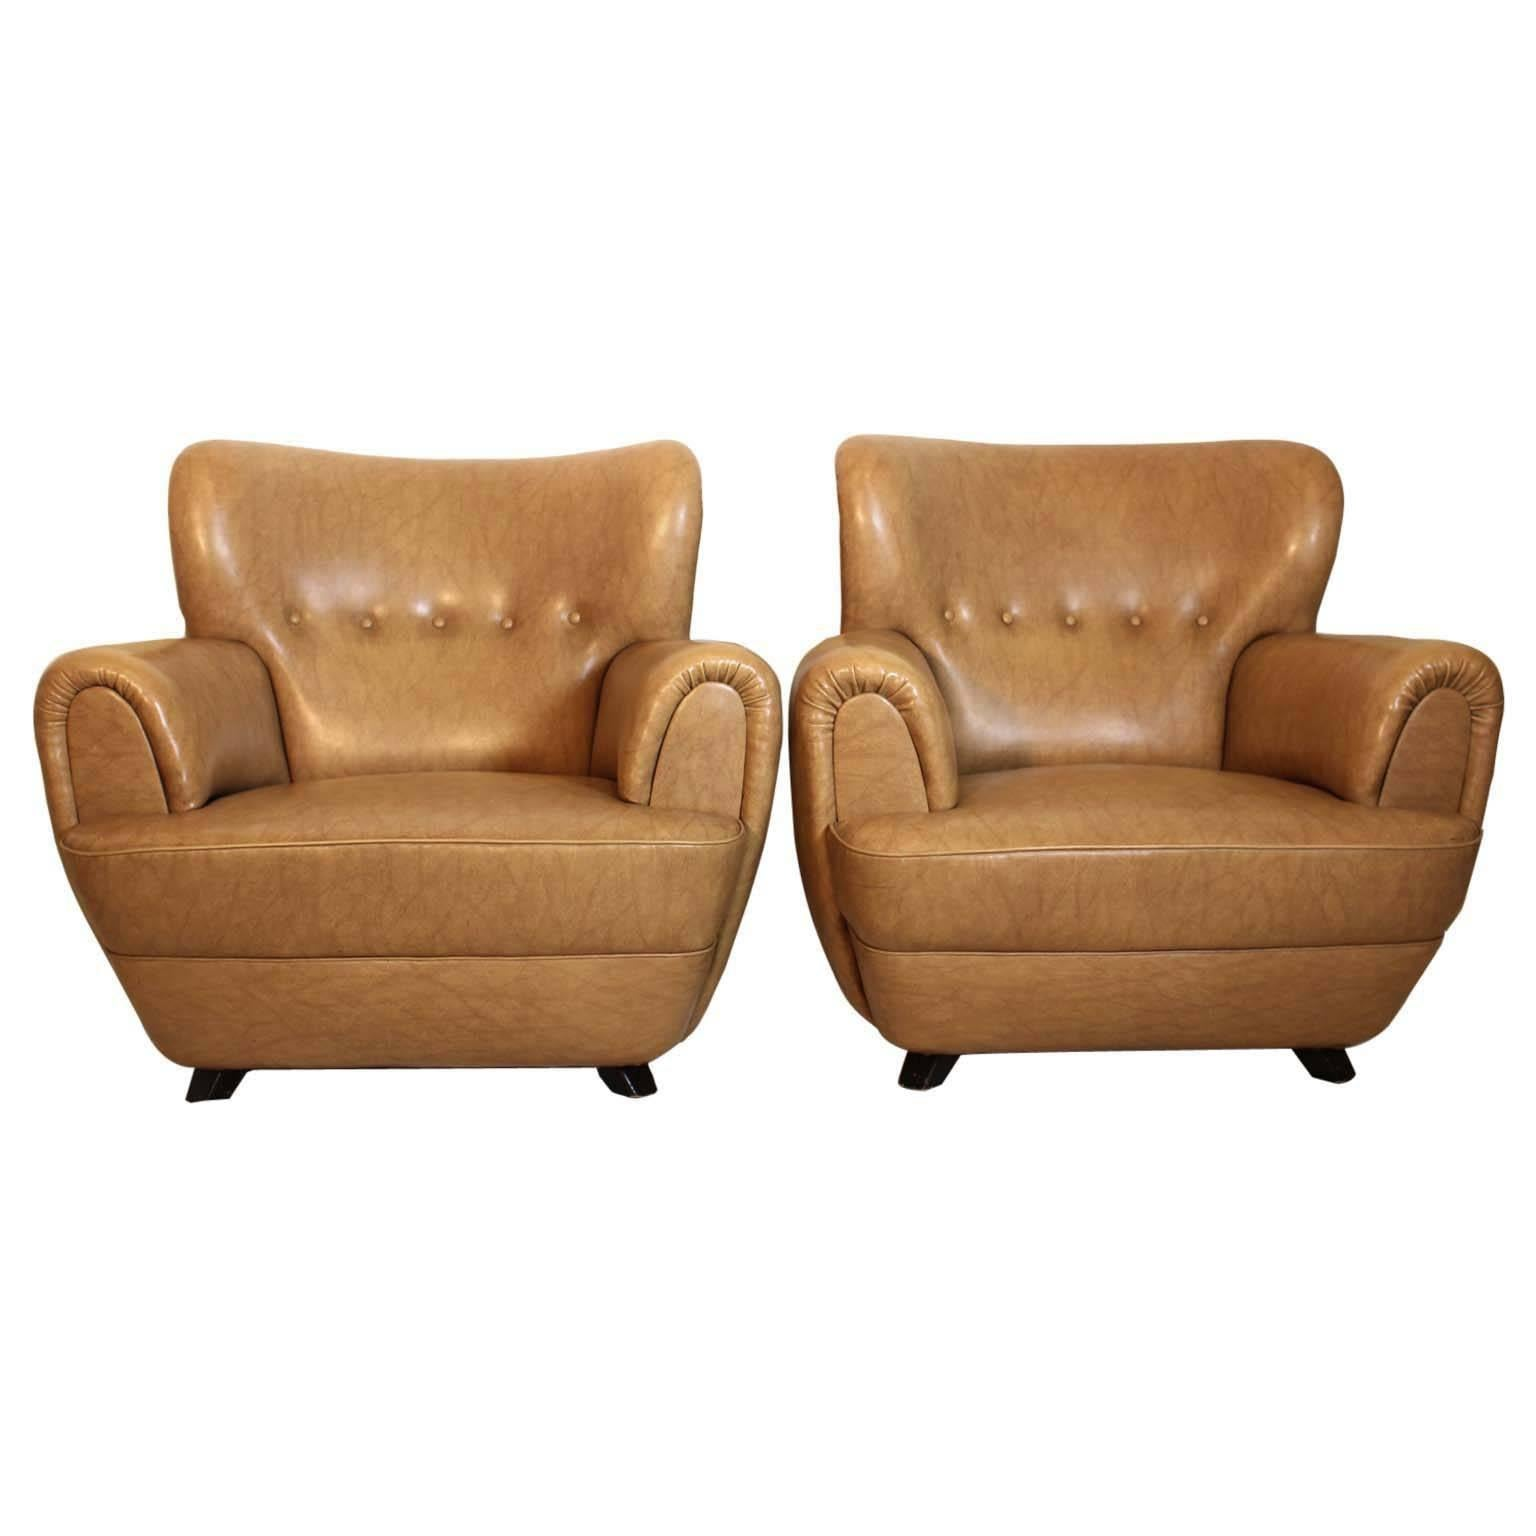 Art Deco Pair Vintage Lounge Chairs Attributed to Guglielmo Ulrich 1940s